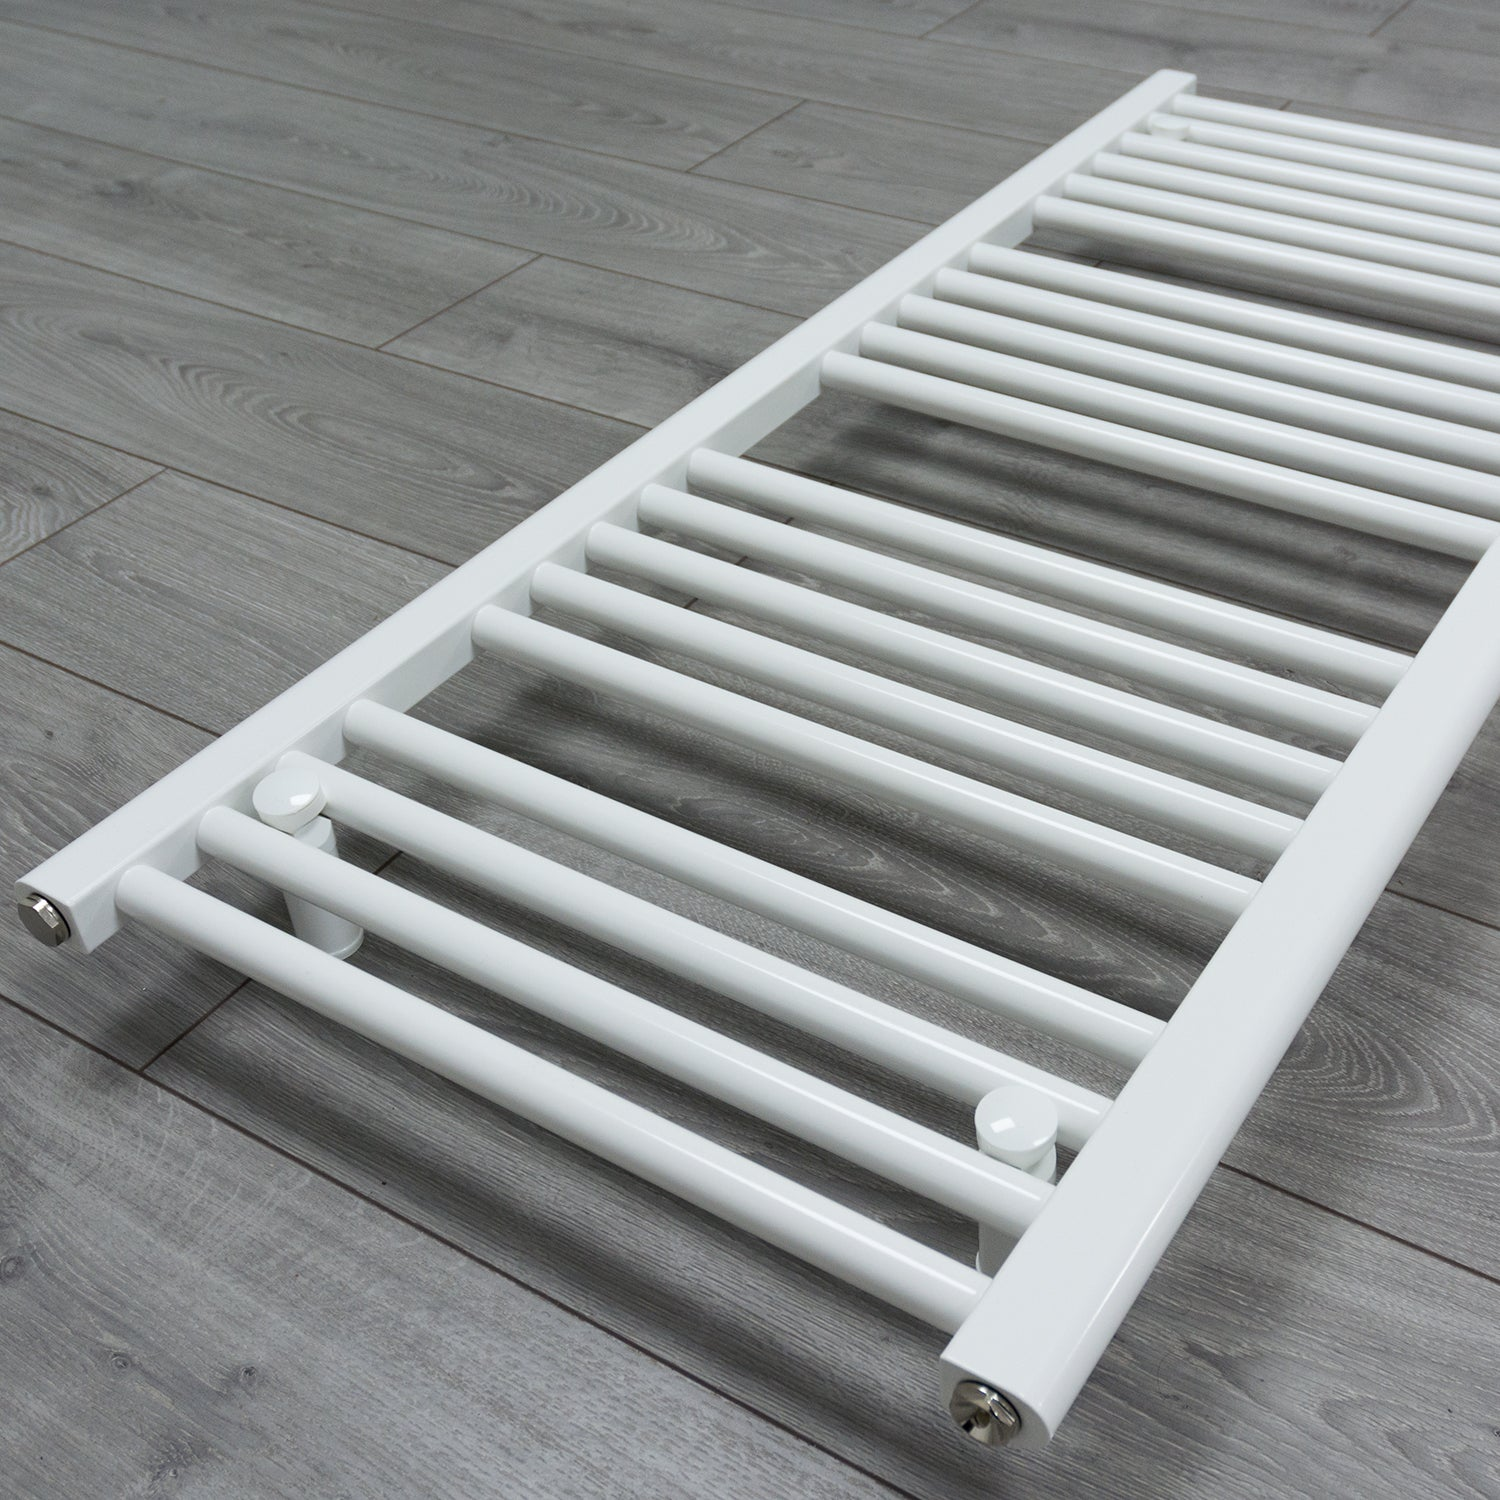 500mm x 400mm White Heated Towel Rail Radiator Close Up Image